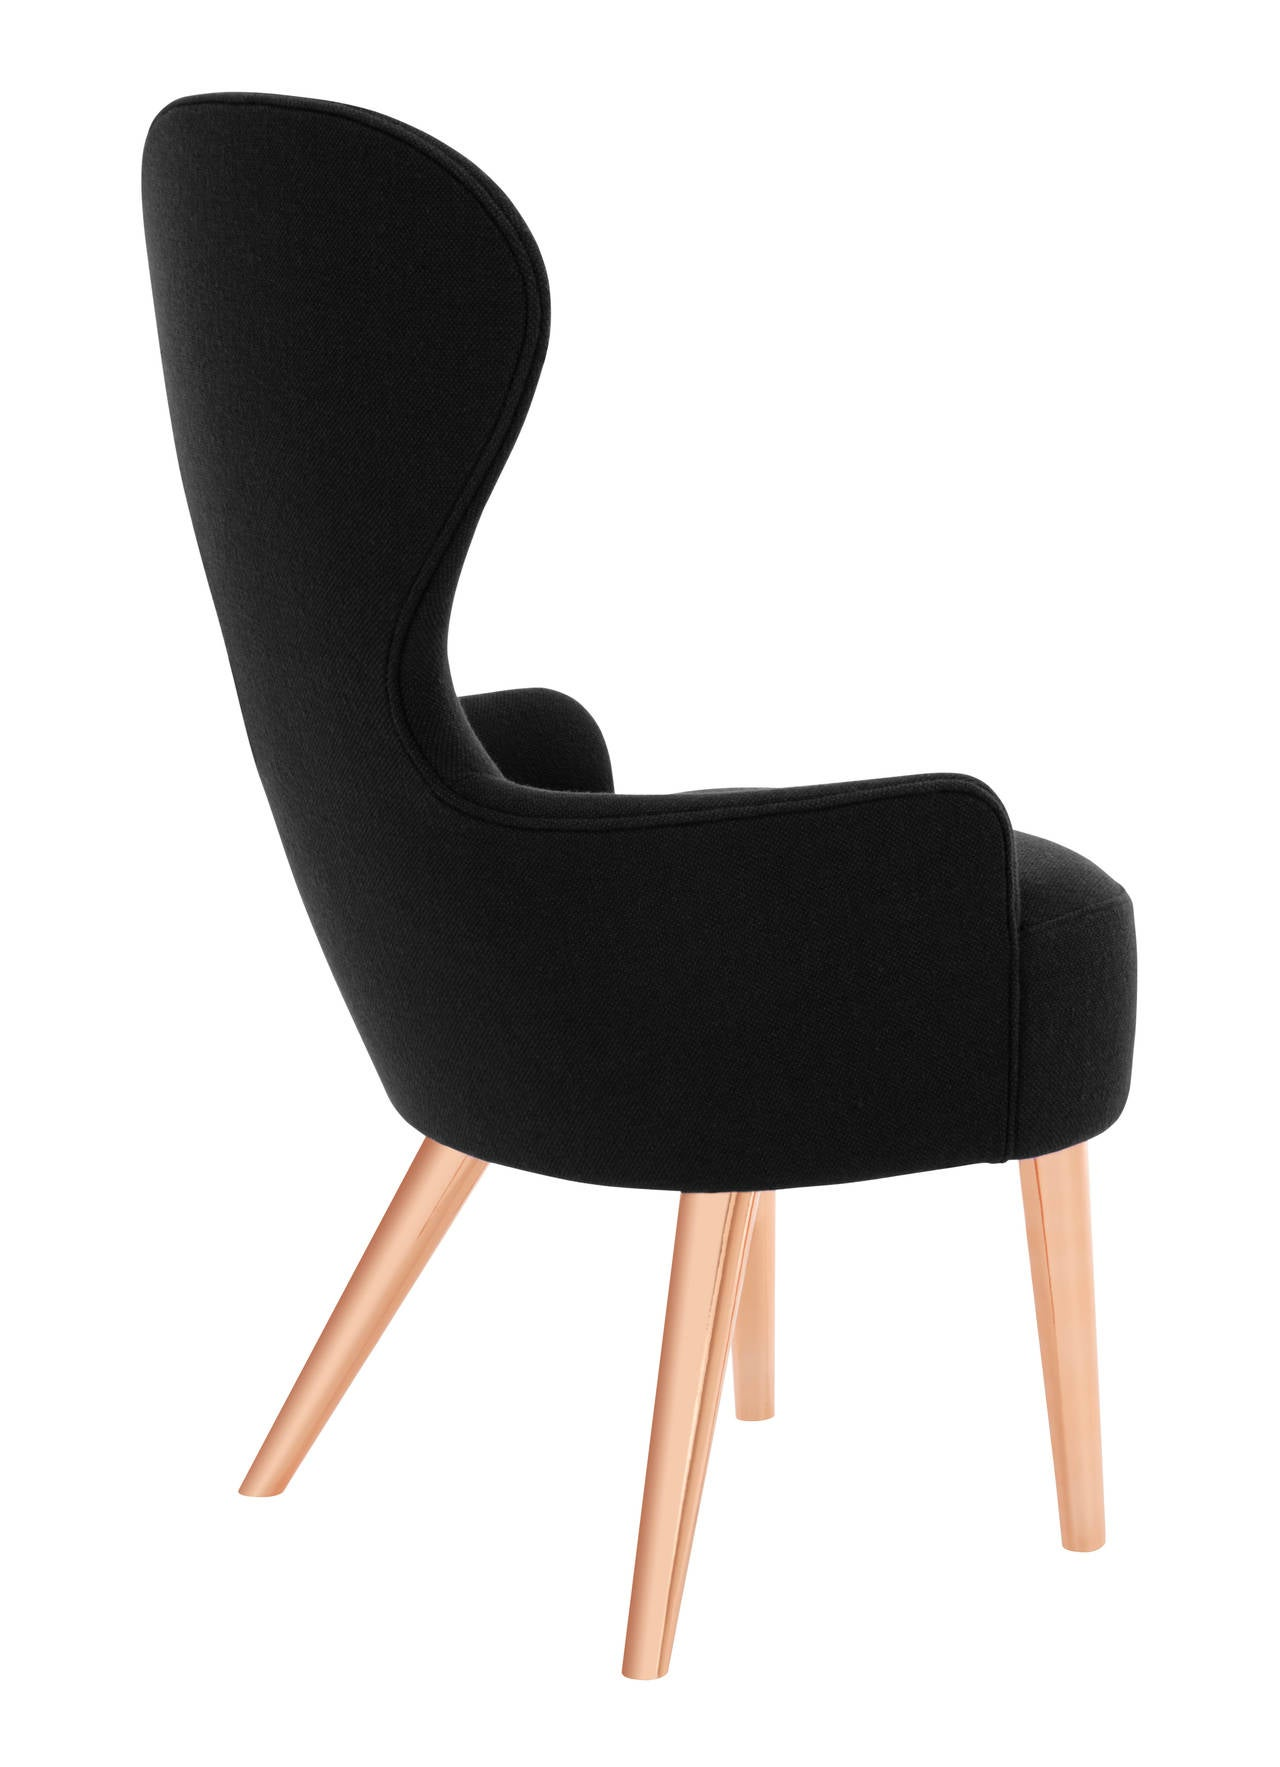 Wingback Dining Chair by Tom Dixon For Sale at 1stdibs